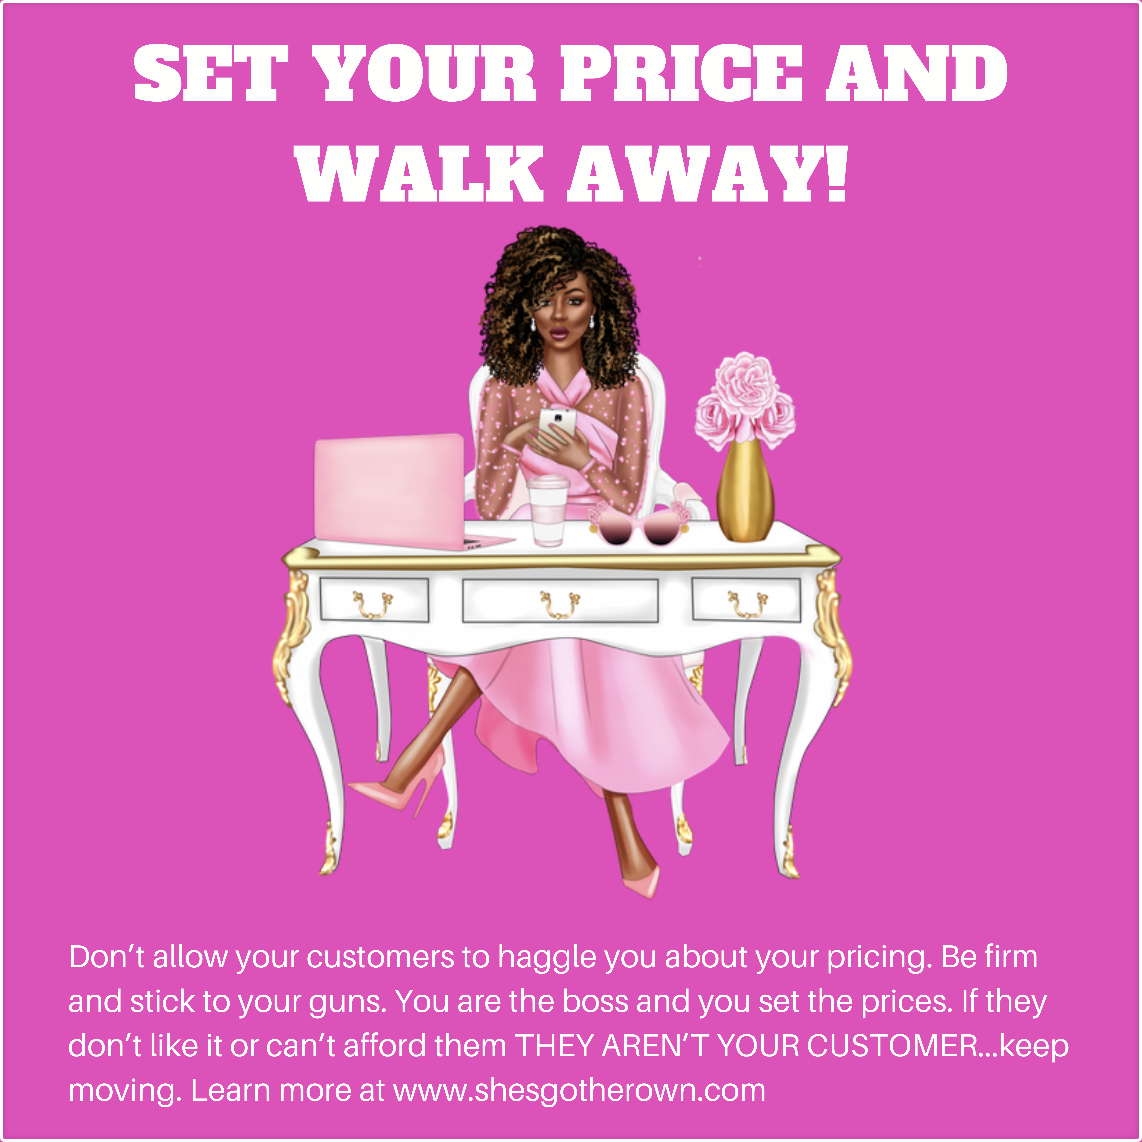 Set Your Prices And Walk Away...